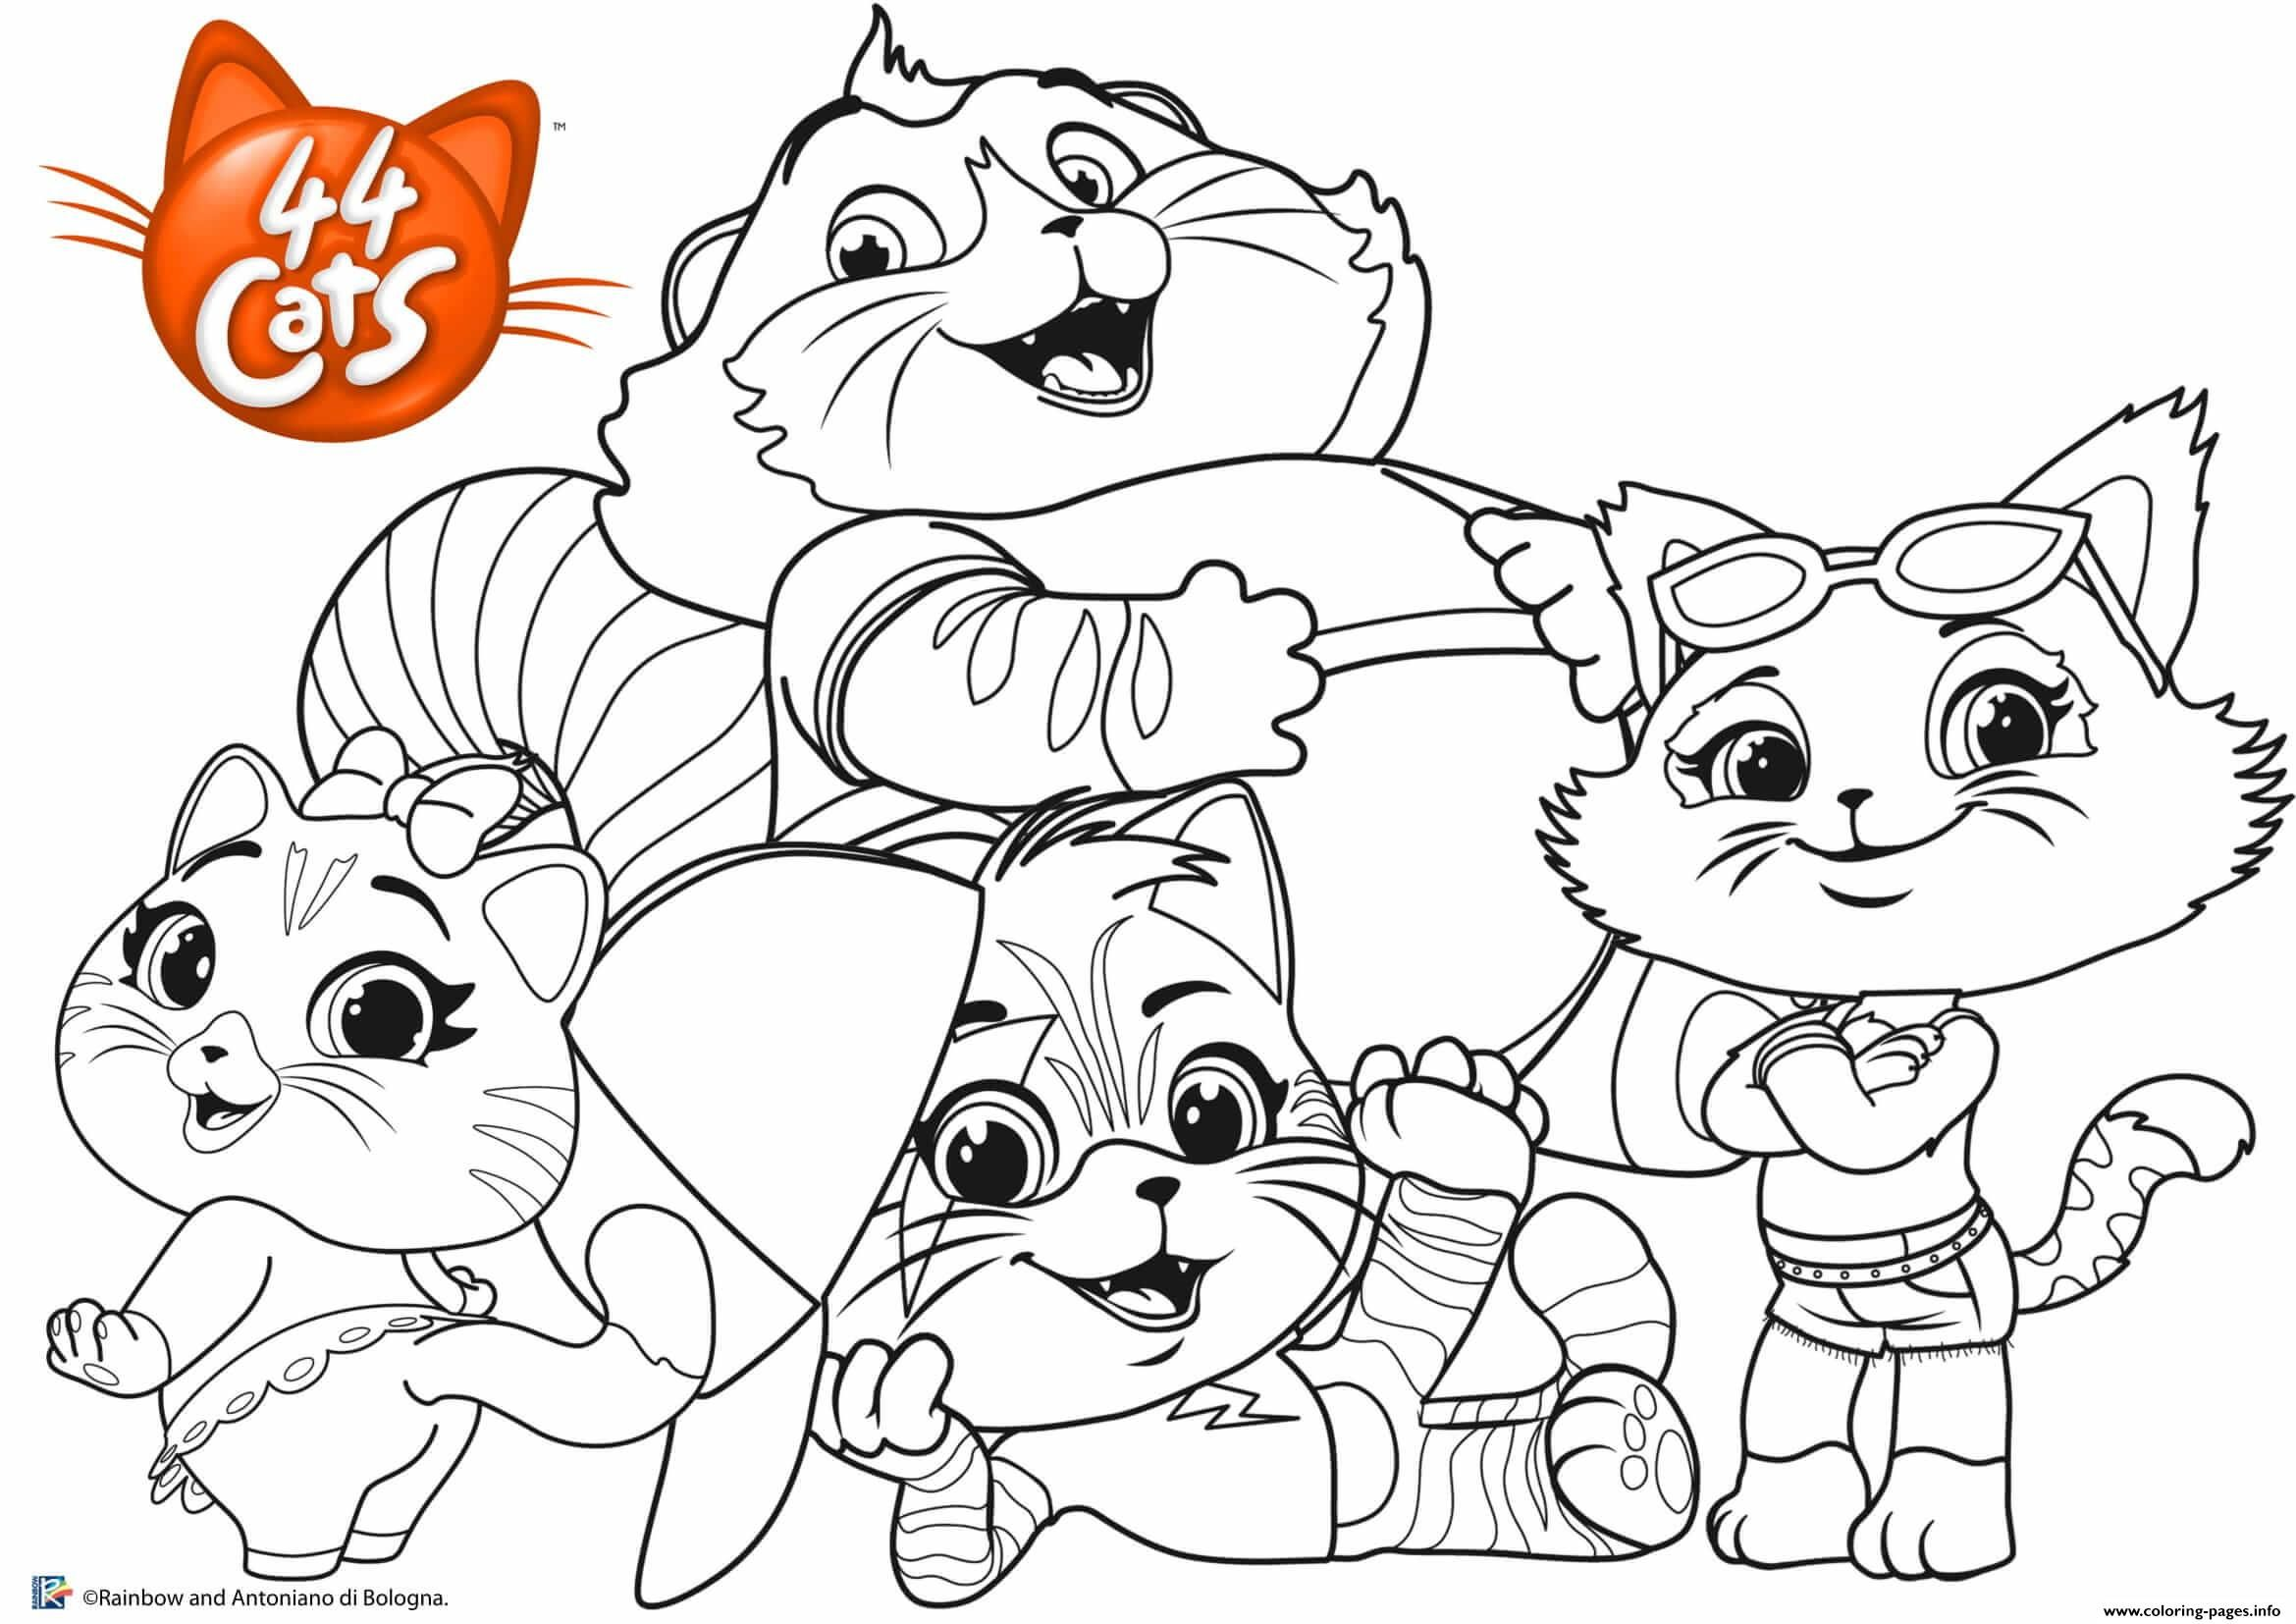 Print Buffycats 44cats Family Coloring Pages In 2020 Family Coloring Pages Coloring Pages Cat Coloring Page